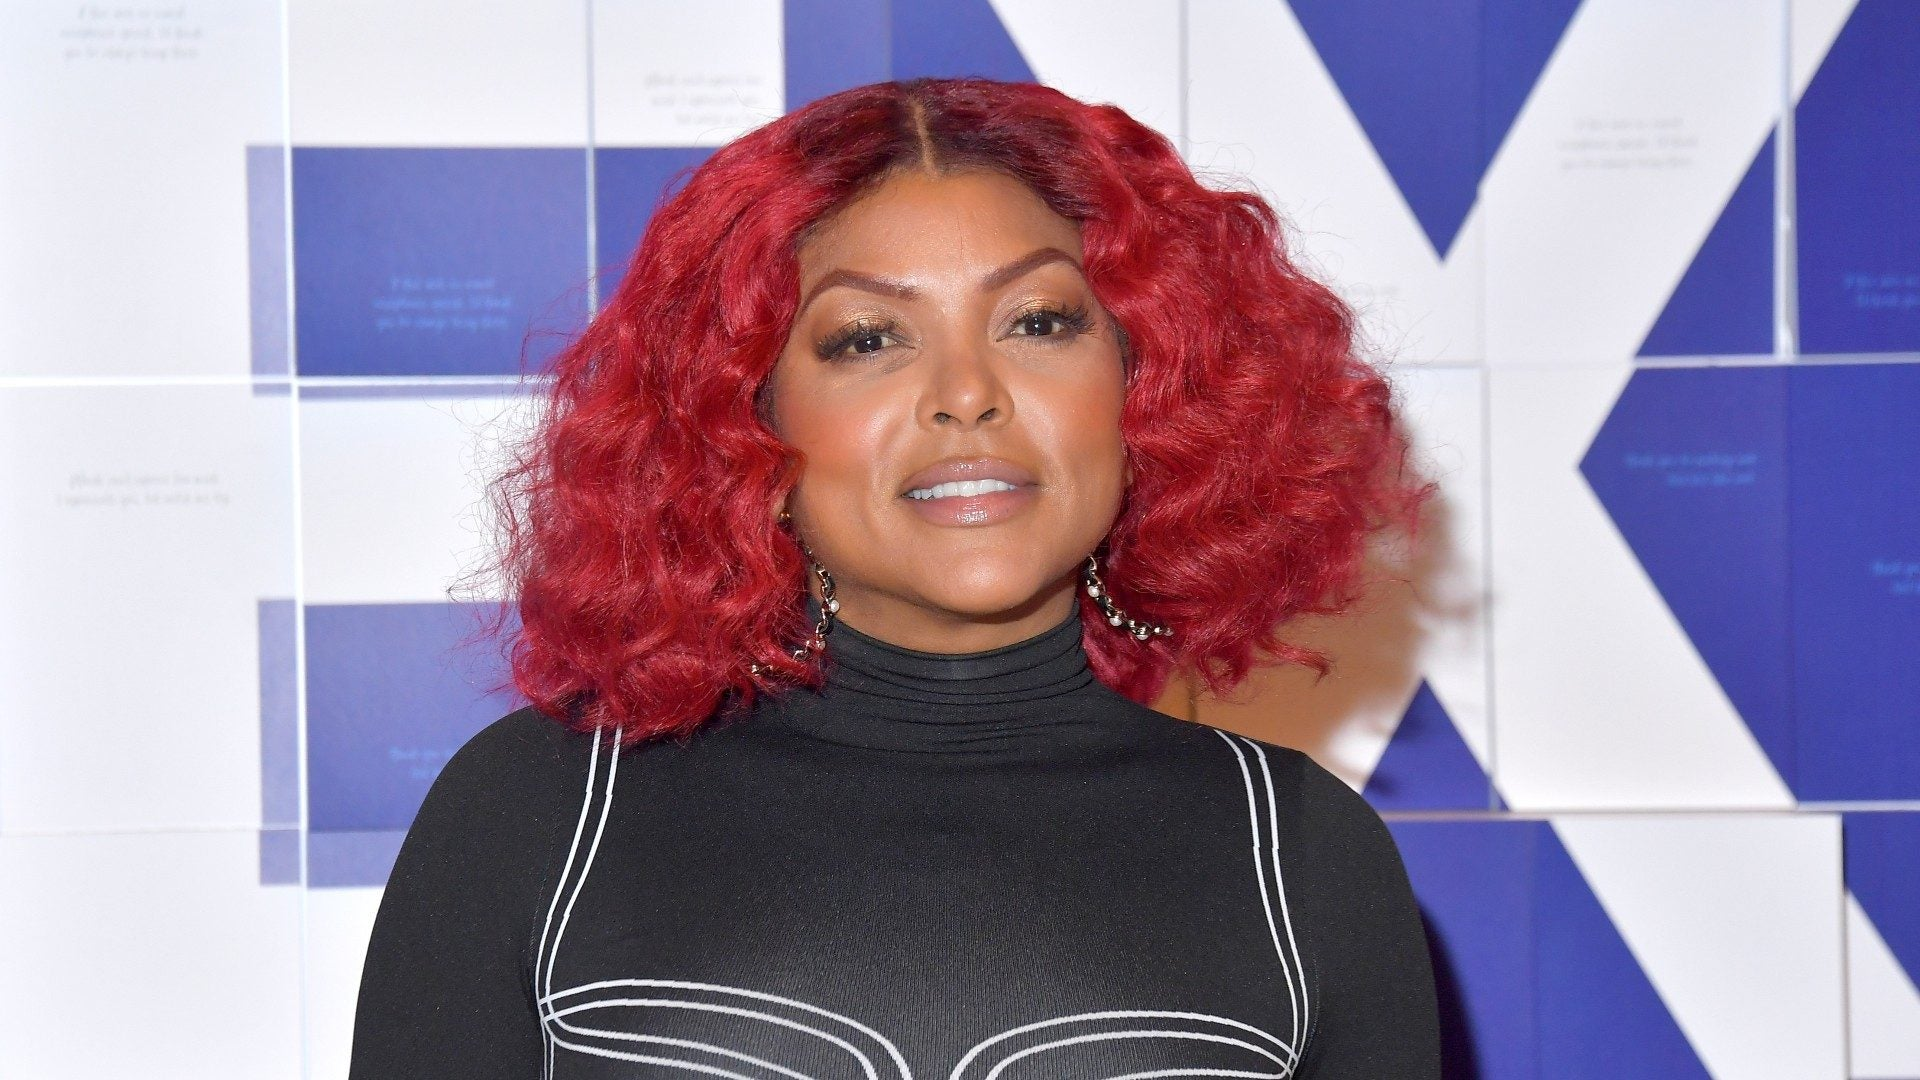 Taraji P. Henson Does Her Hair And Makeup Like A Pro